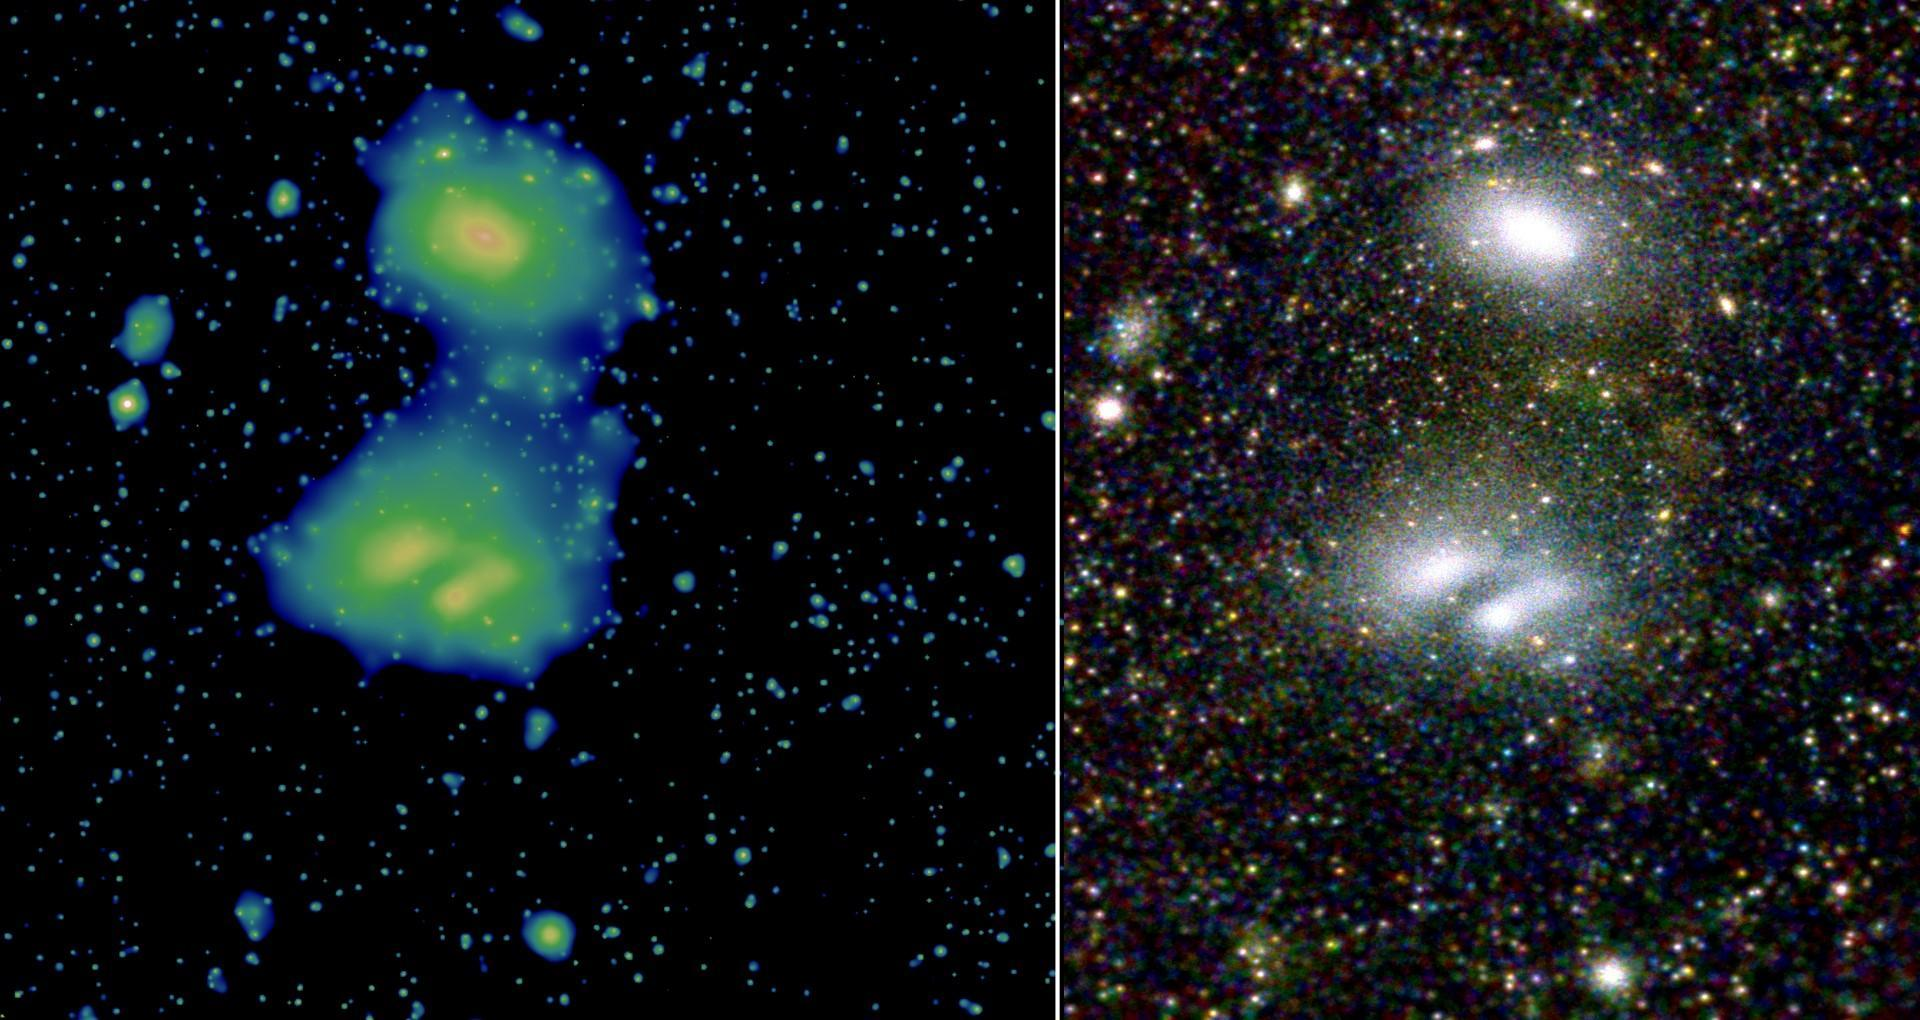 Two interacting galaxy clusters, A3391 and A3395